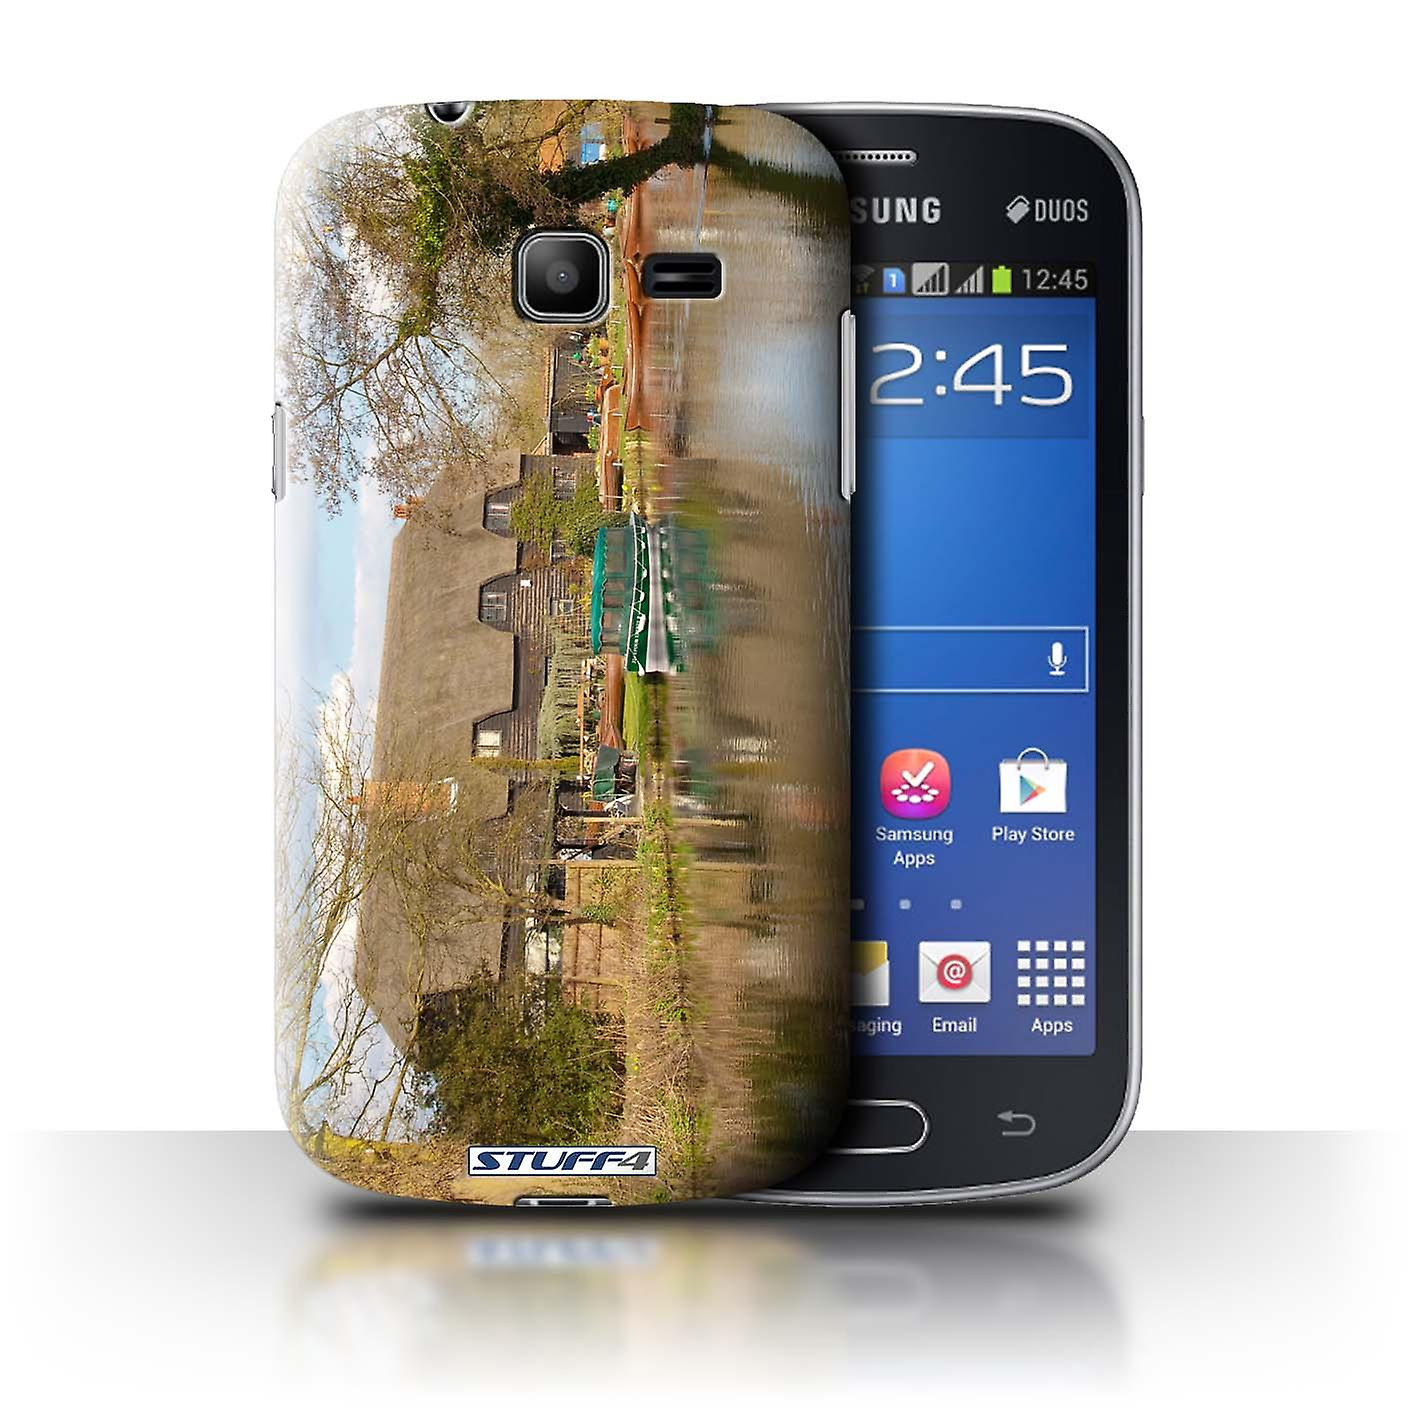 STUFF4 Case/Cover for Samsung Galaxy Star Pro/S7260